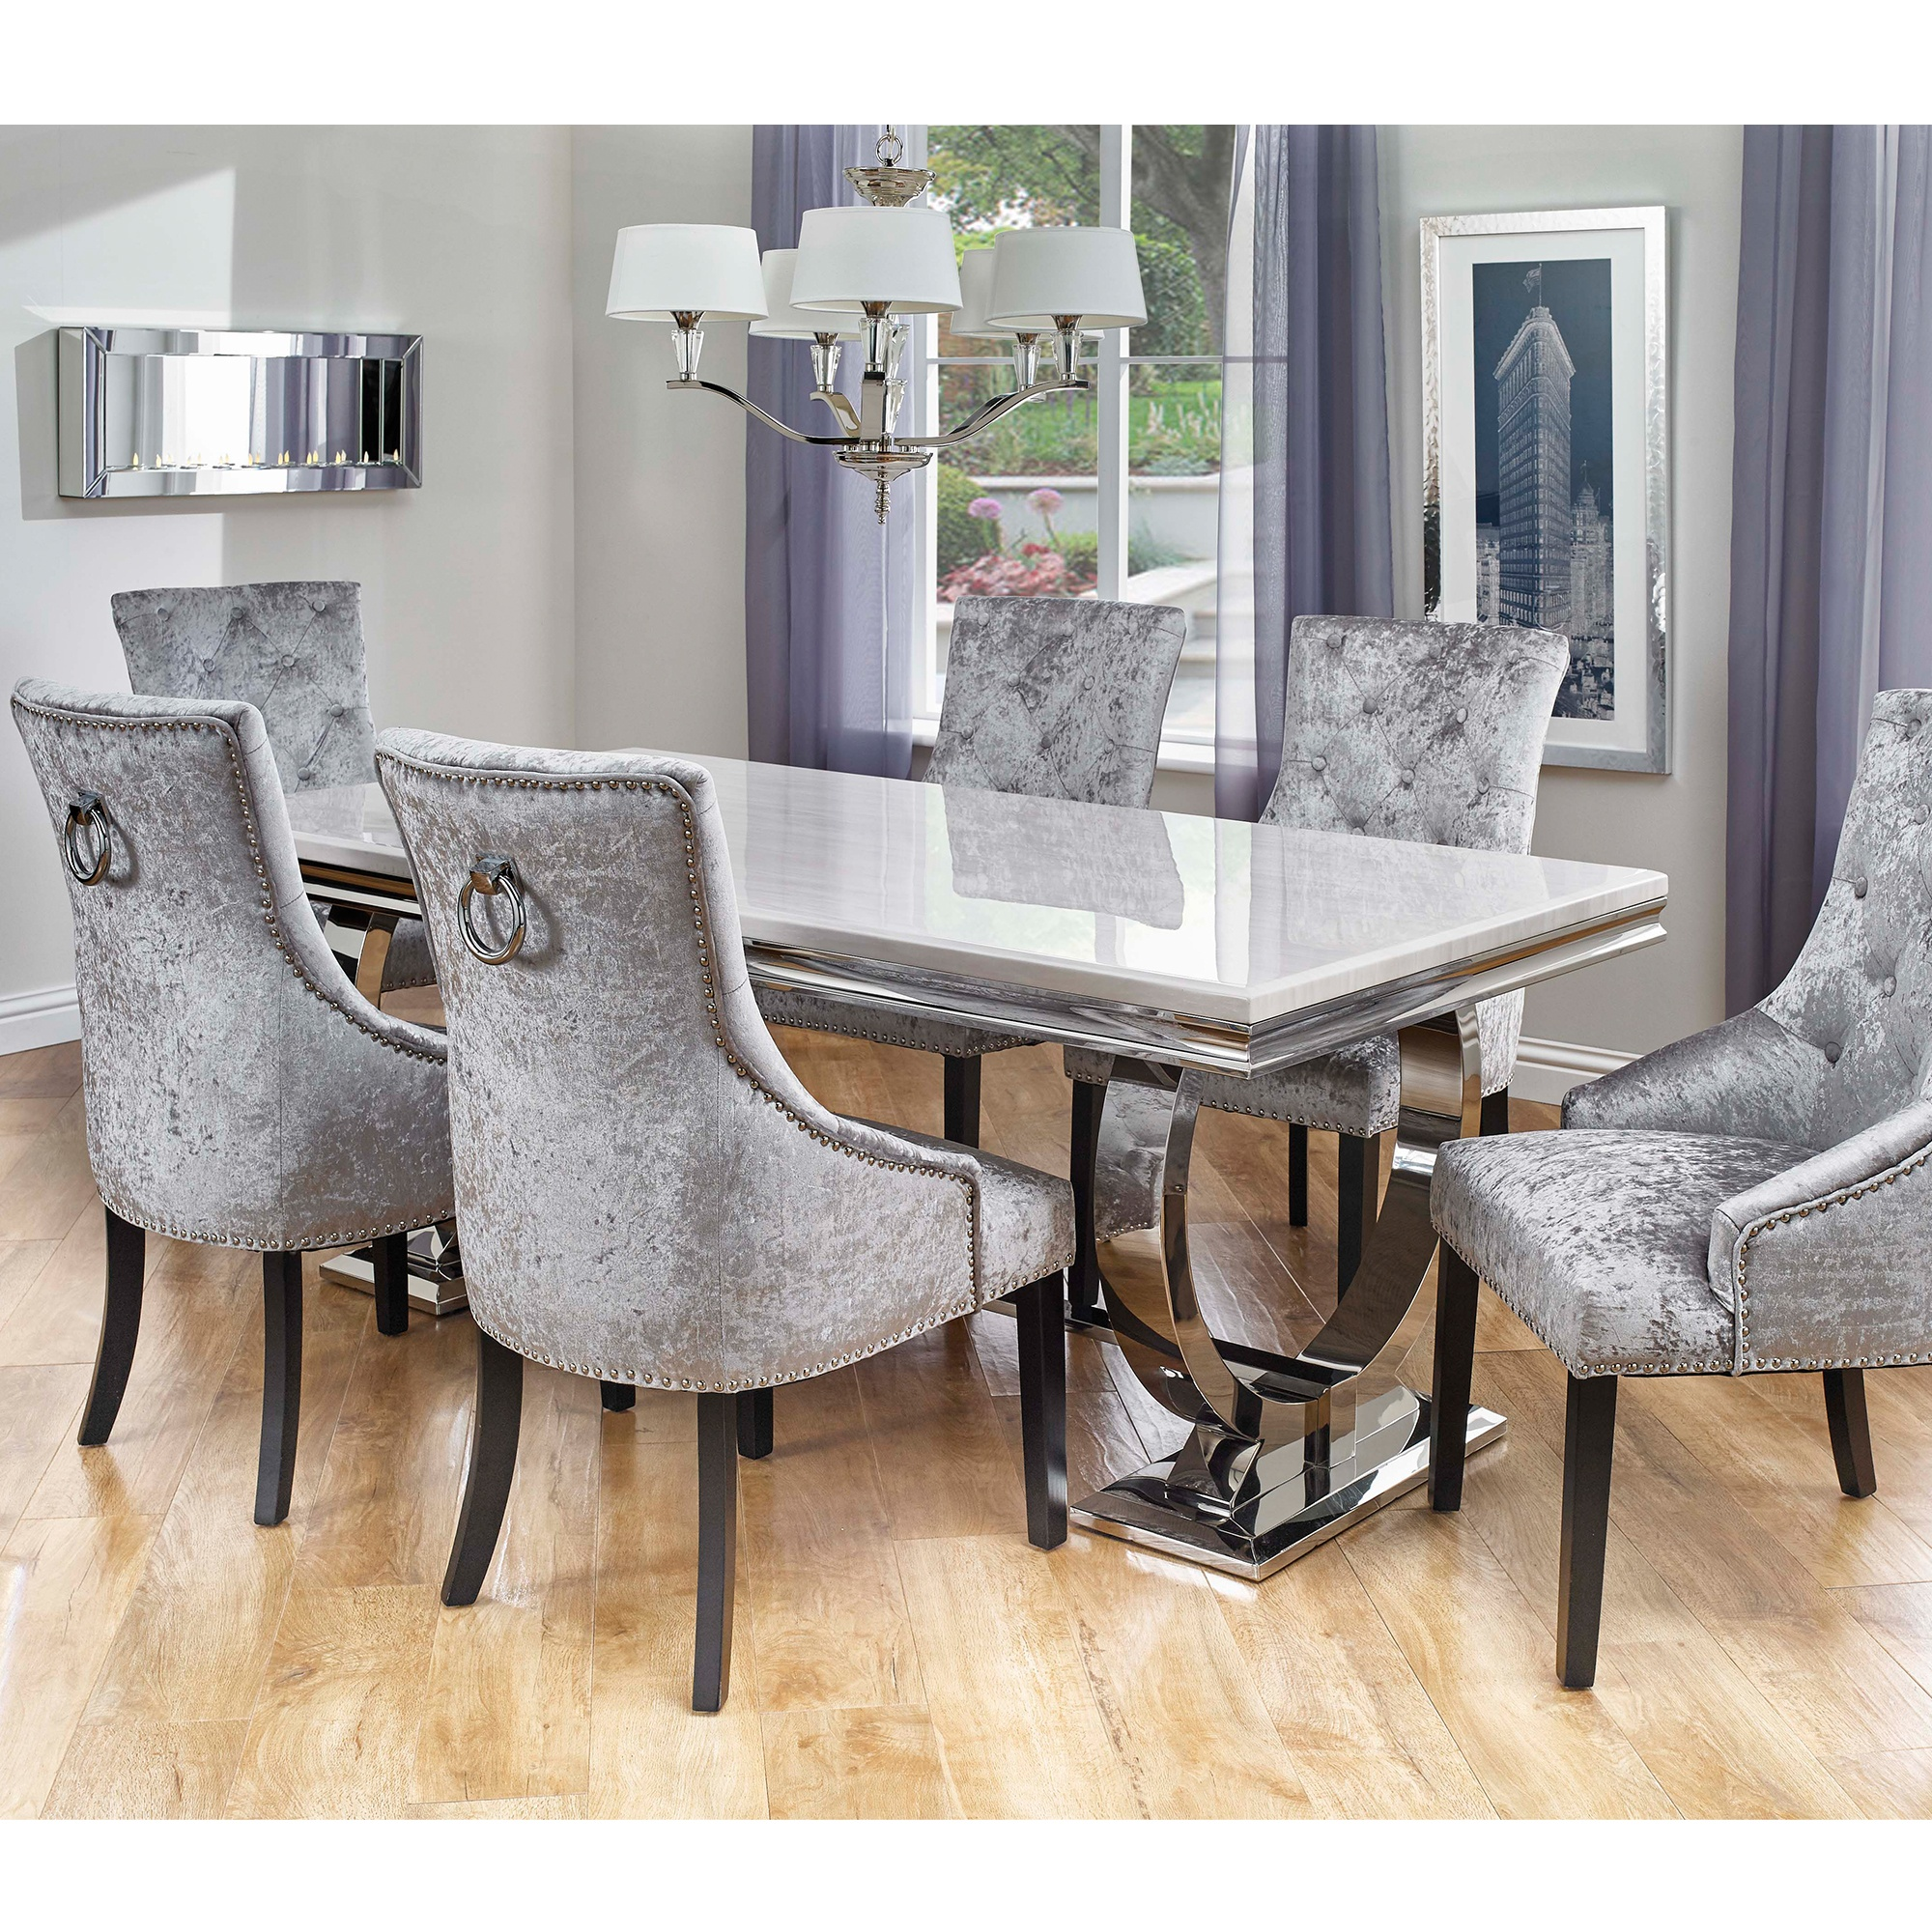 Table And Chairs: Cookes Collection Valentina Dining Table And 6 Chairs